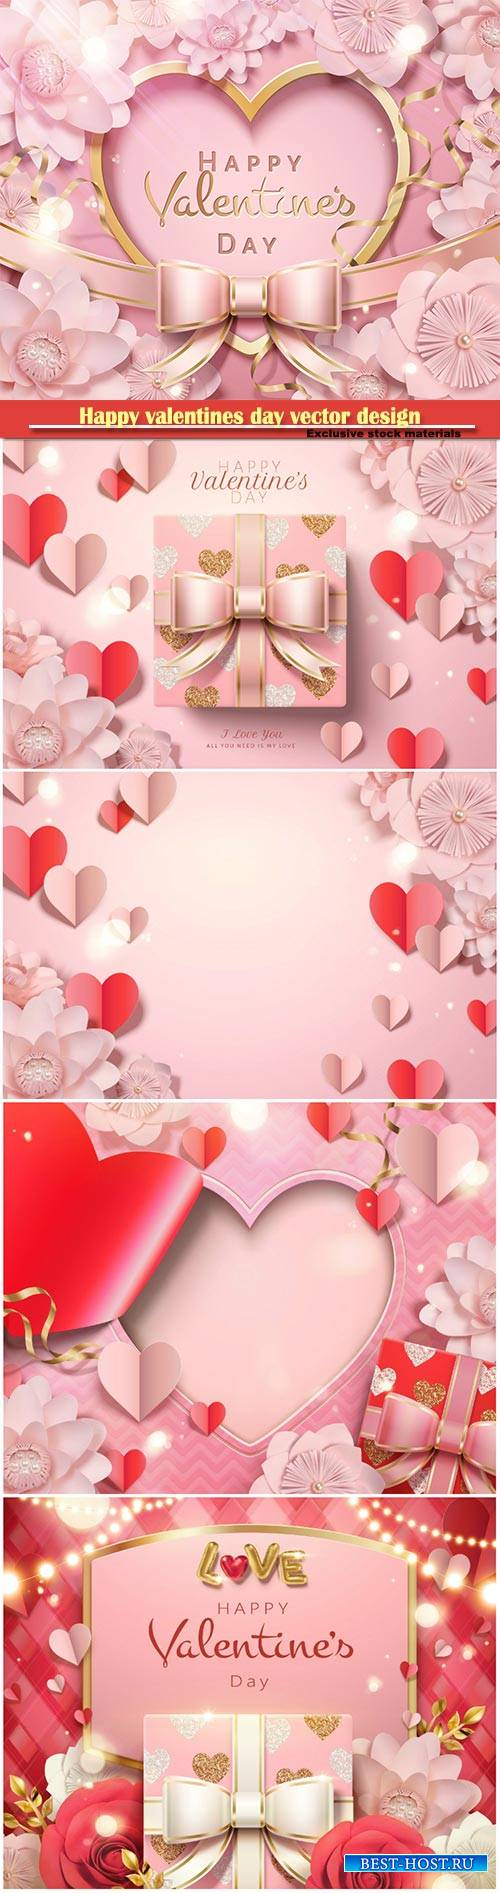 Happy valentines day vector design with heart, balloons, roses in 3d illust ...